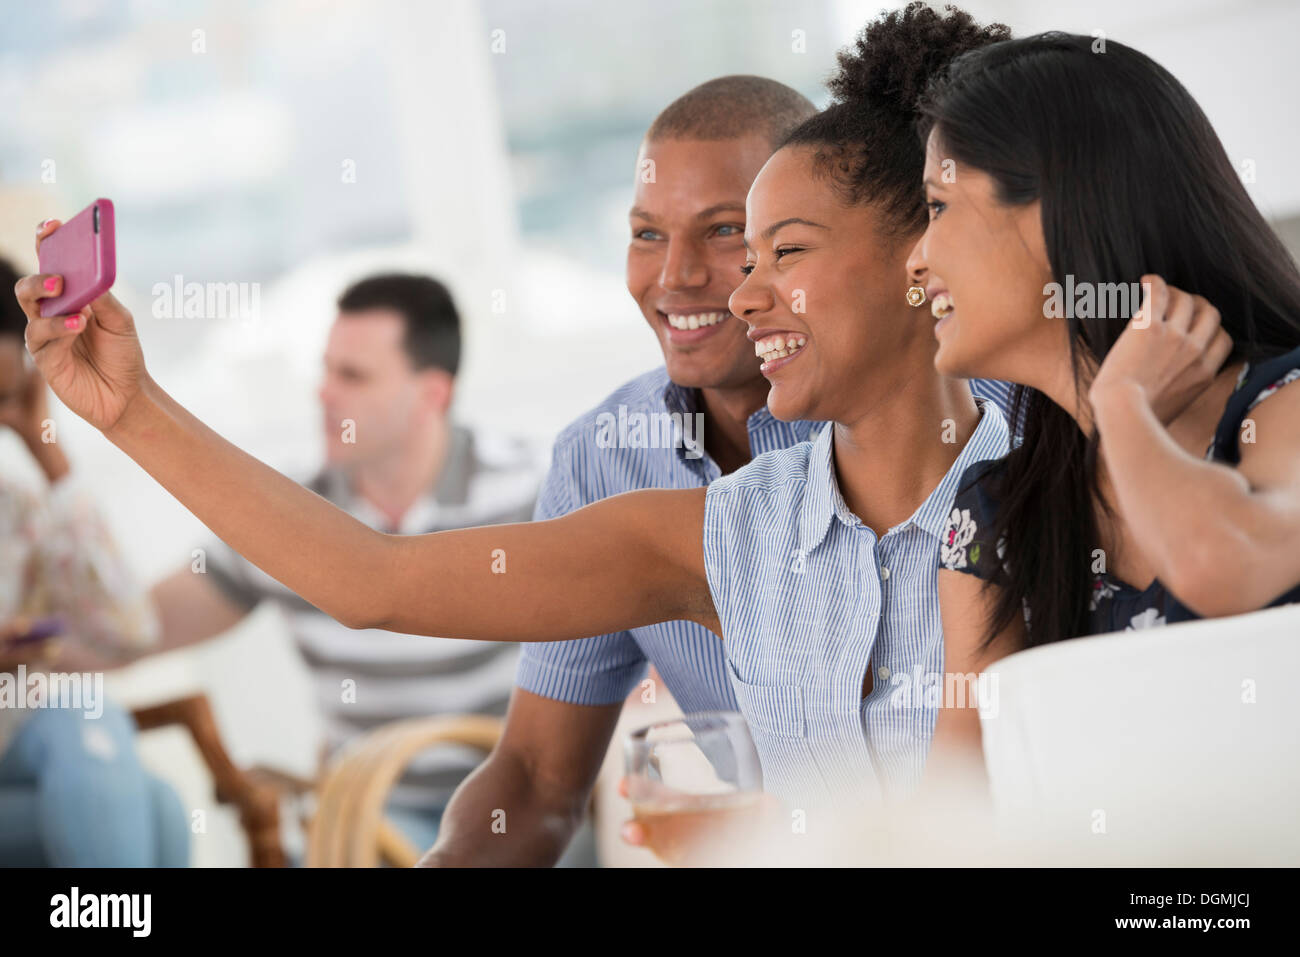 Office event. A woman taking a selfie of the group with a smart phone. - Stock Image